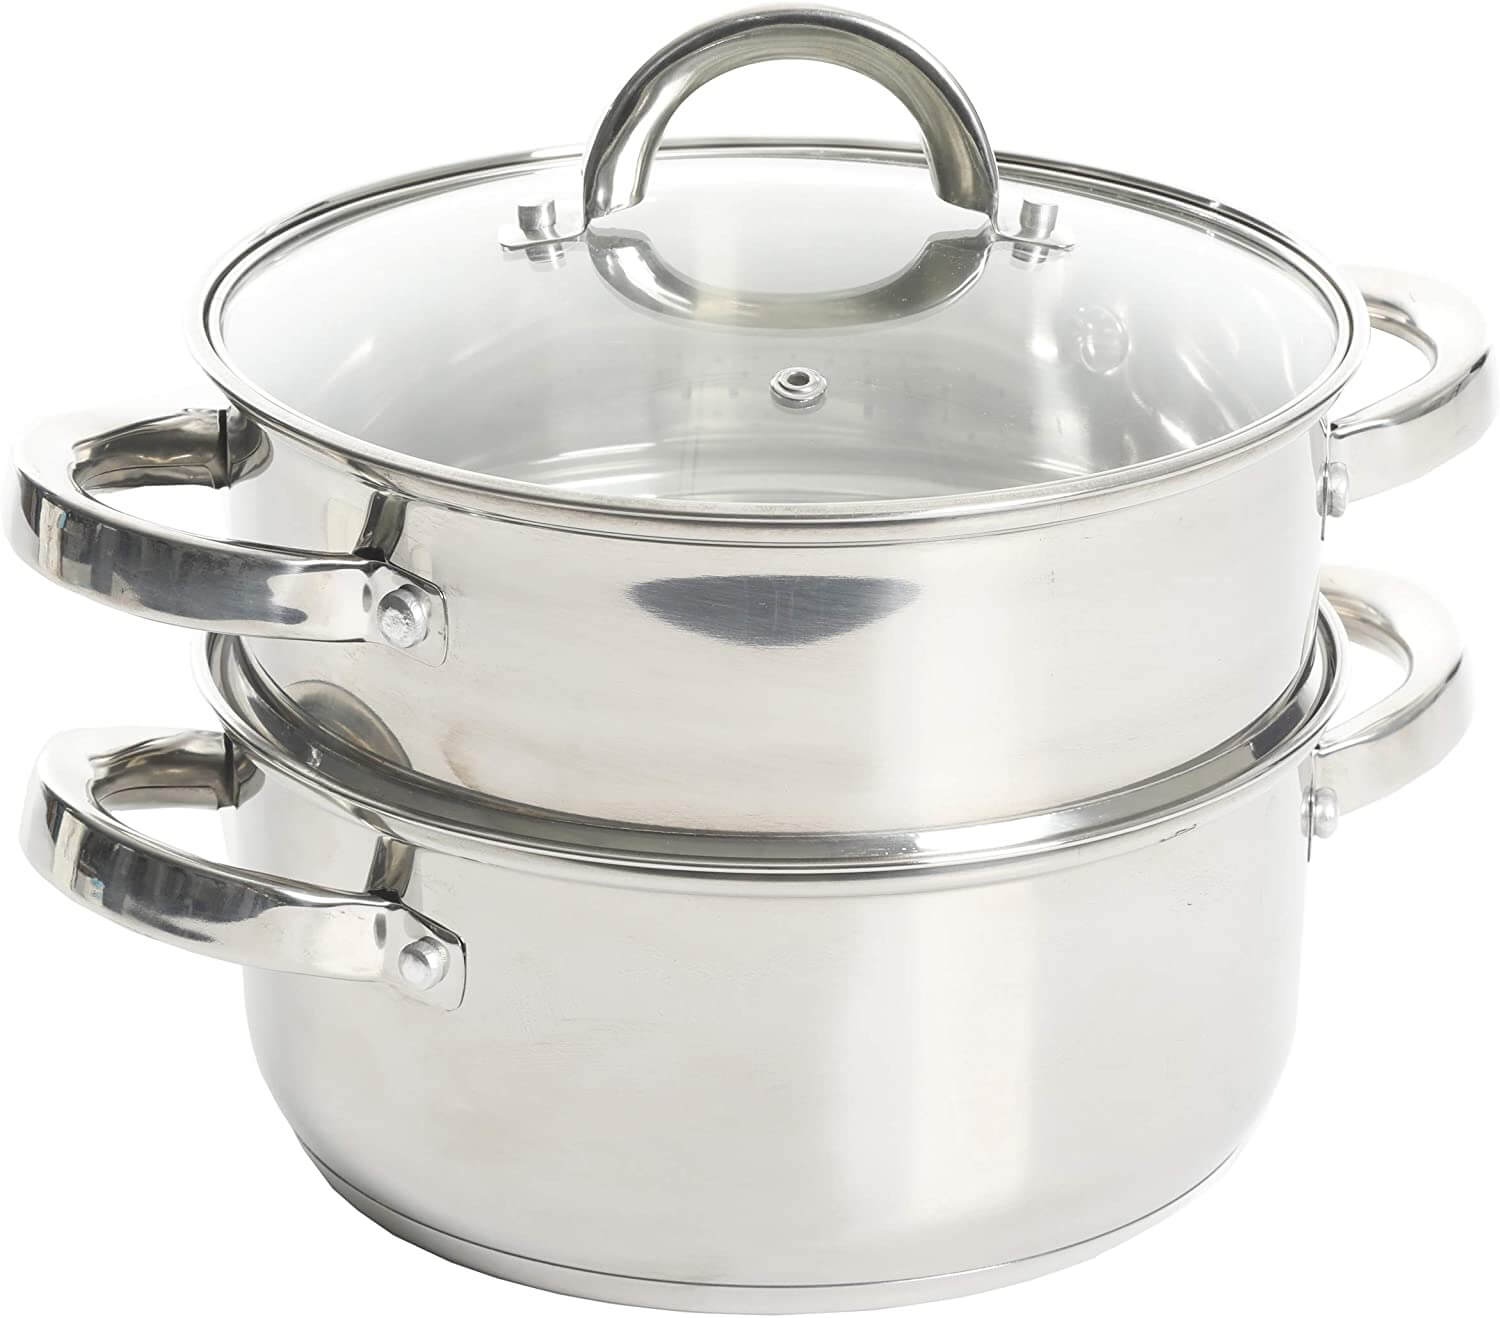 Oster Sangerfield Stainless Steel Cookware